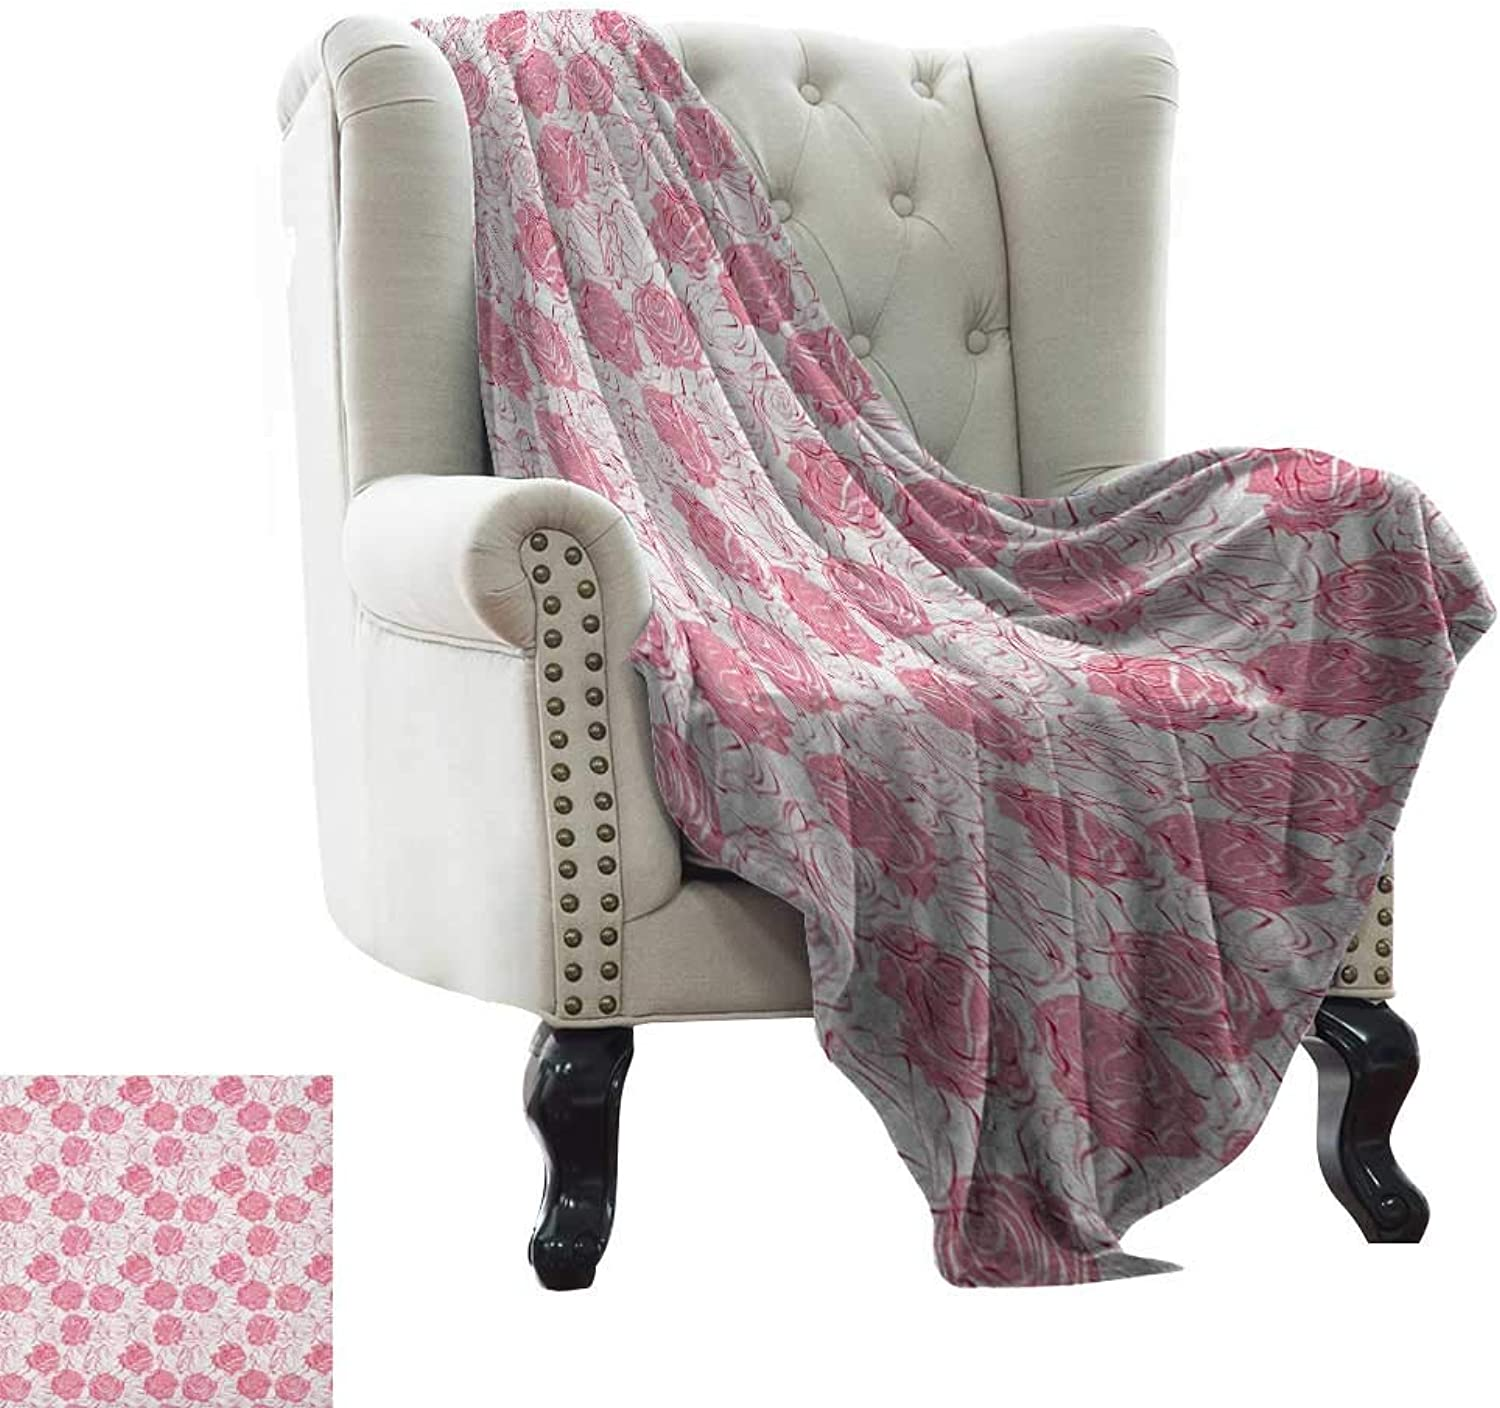 Warmfamily pink,Weave Pattern Extra Long Blanket,Artistic Girlish Pattern pink Flower Silhouettes Outlines Botany Garden Meadow 60 x36 ,Super Soft and Comfortable,Suitable for Sofas,Chairs,beds